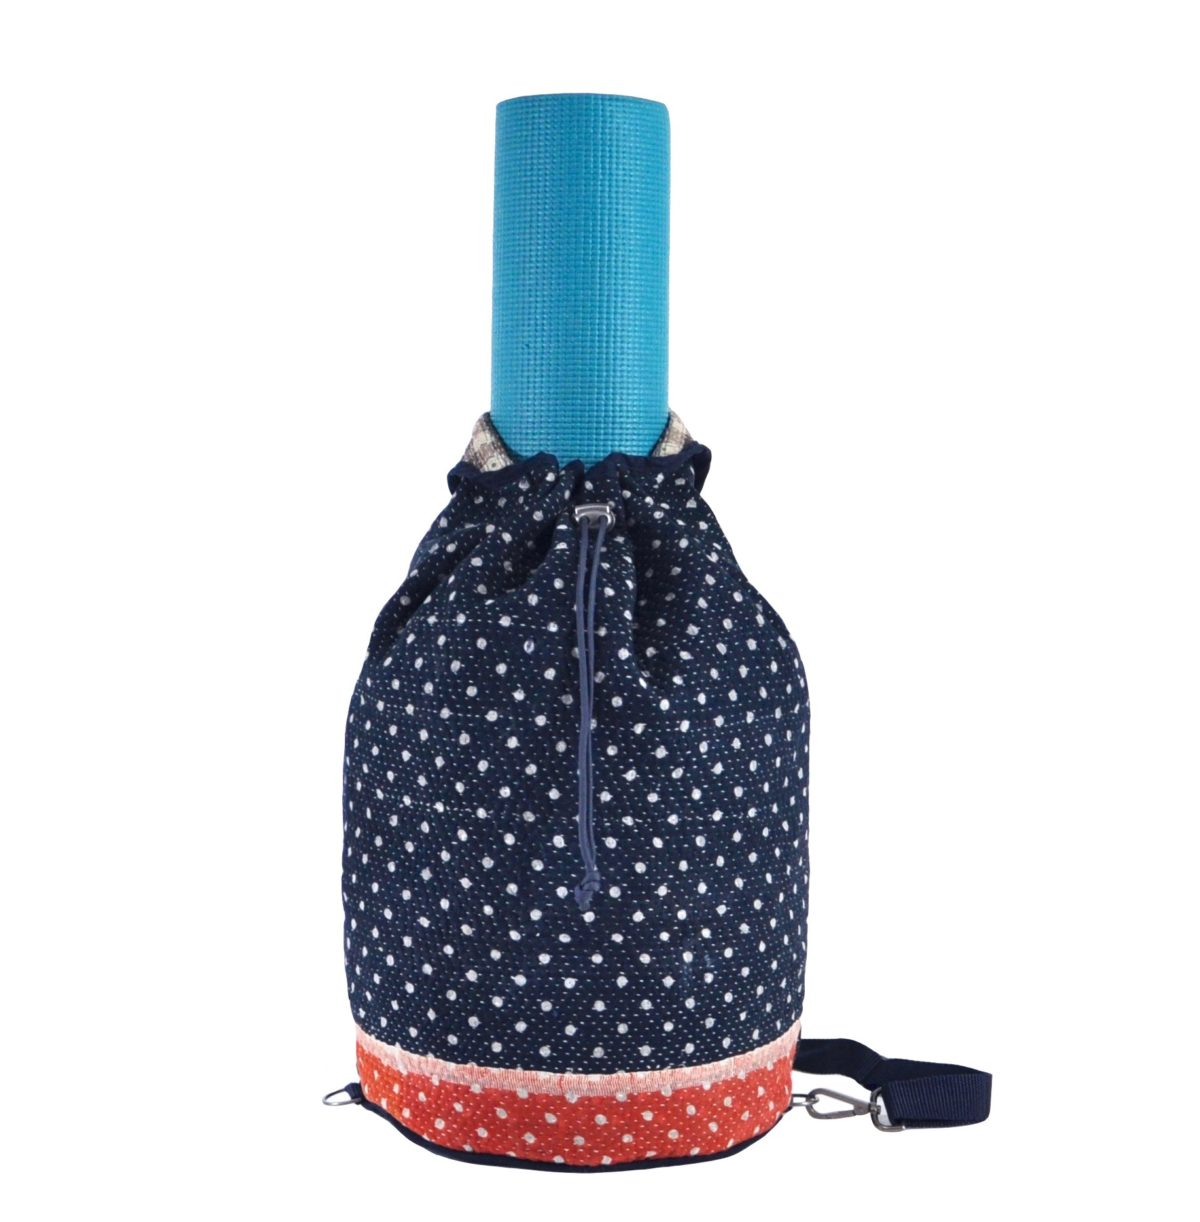 YESNESS Navy w: White Polka Dots & Red Band 1